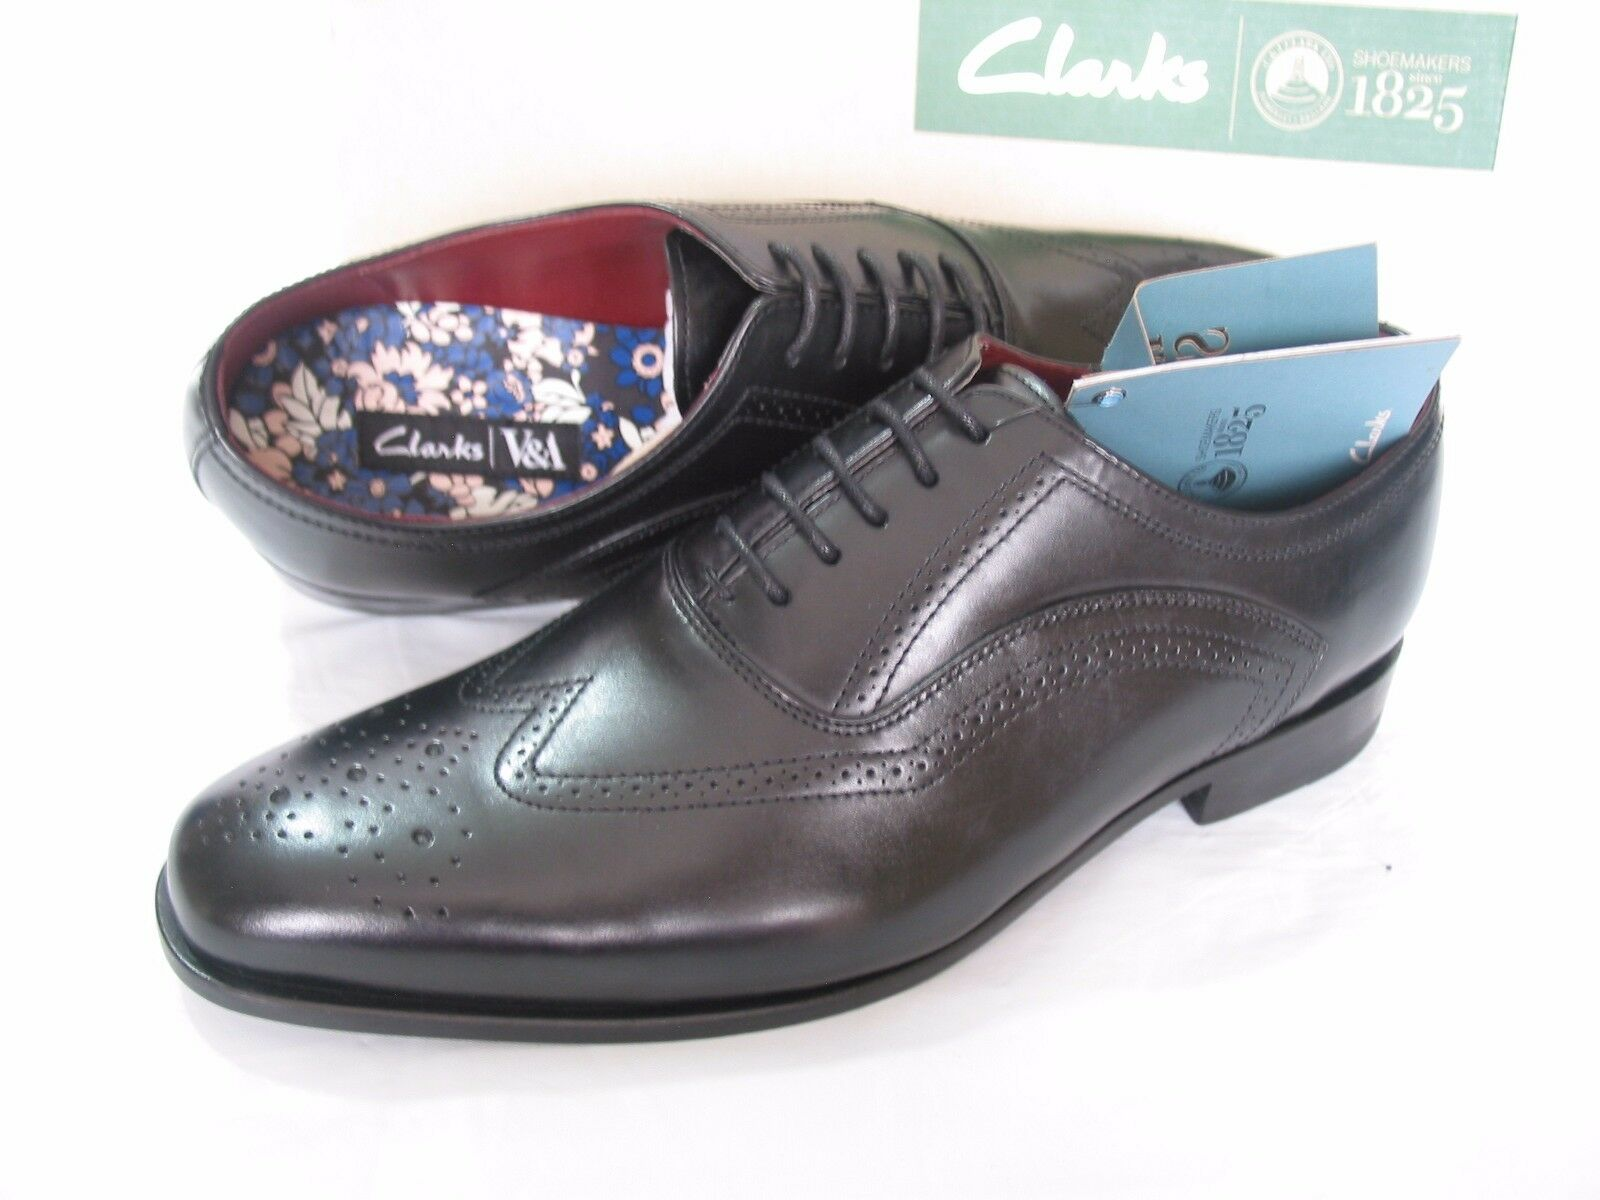 NEW CLARKS V&A BROGUE SWIXTY LIMIT SHINY LEATHER BROGUE V&A SHOES SIZE 7.5 f35737